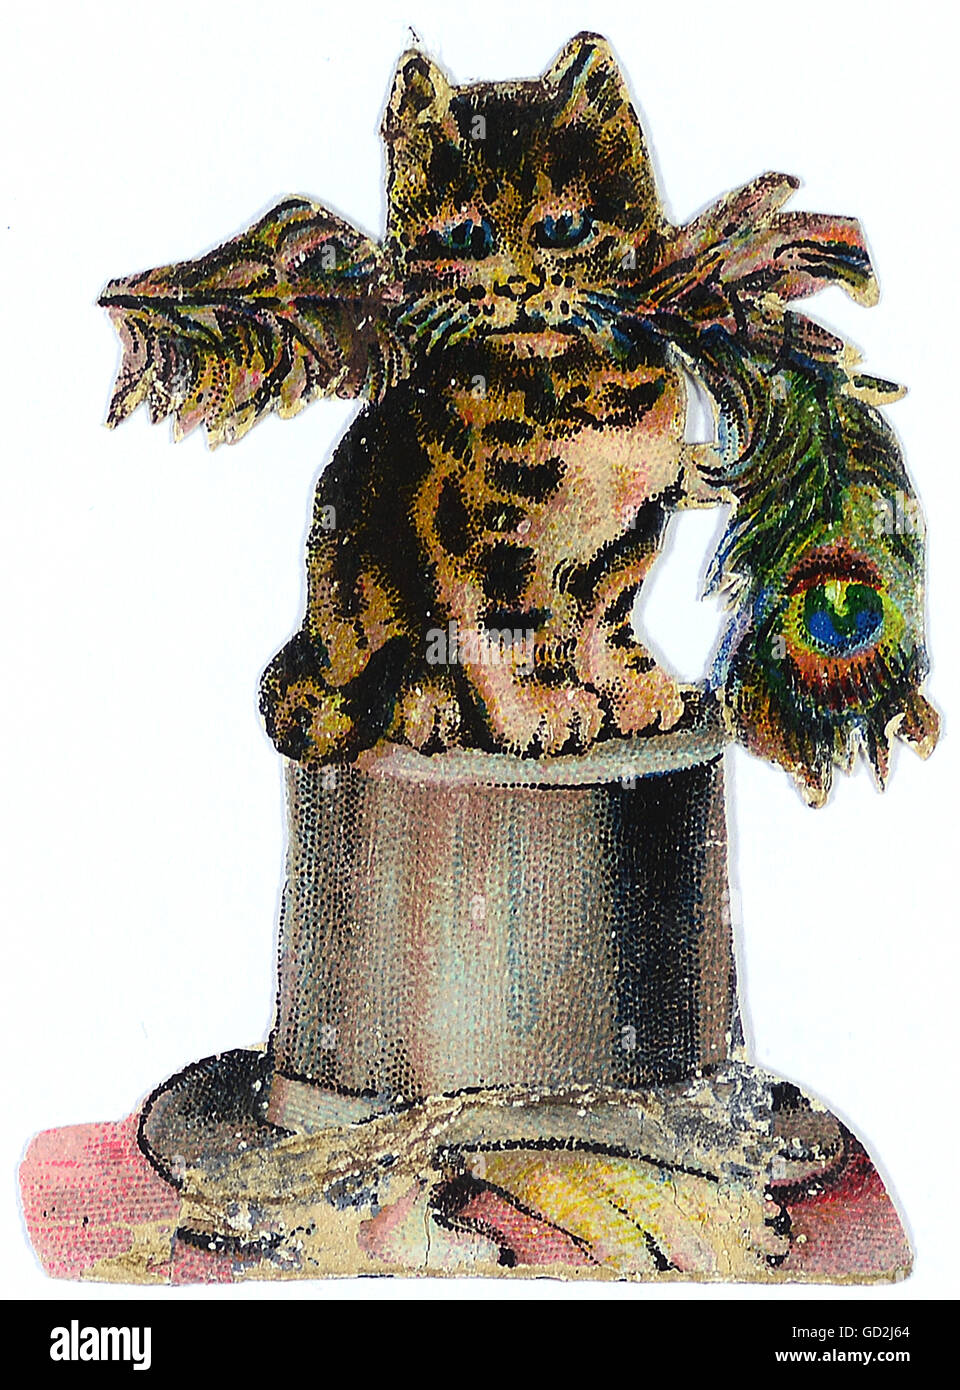 kitsch / souvenir, glossy prints, cat sitting on a hat, a peacock feather in the snout, chromolithograph, late 19th - Stock Image